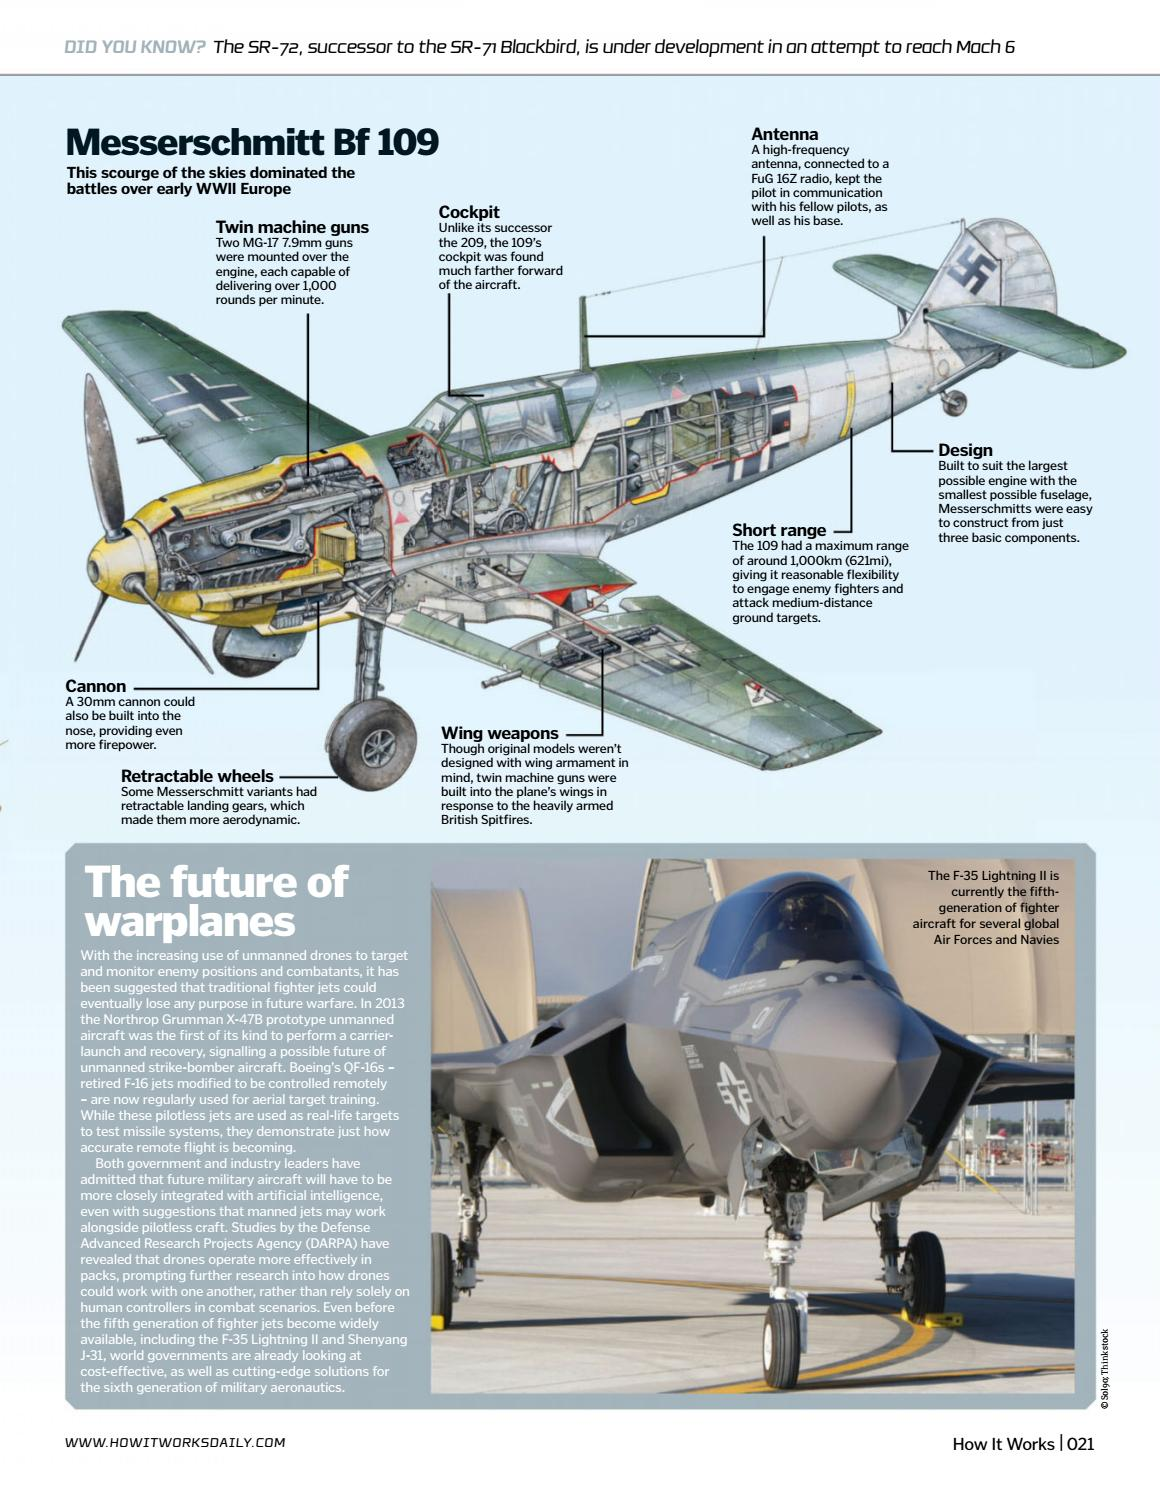 How It Works - Fighter Planes | Osama by Osama - issuu